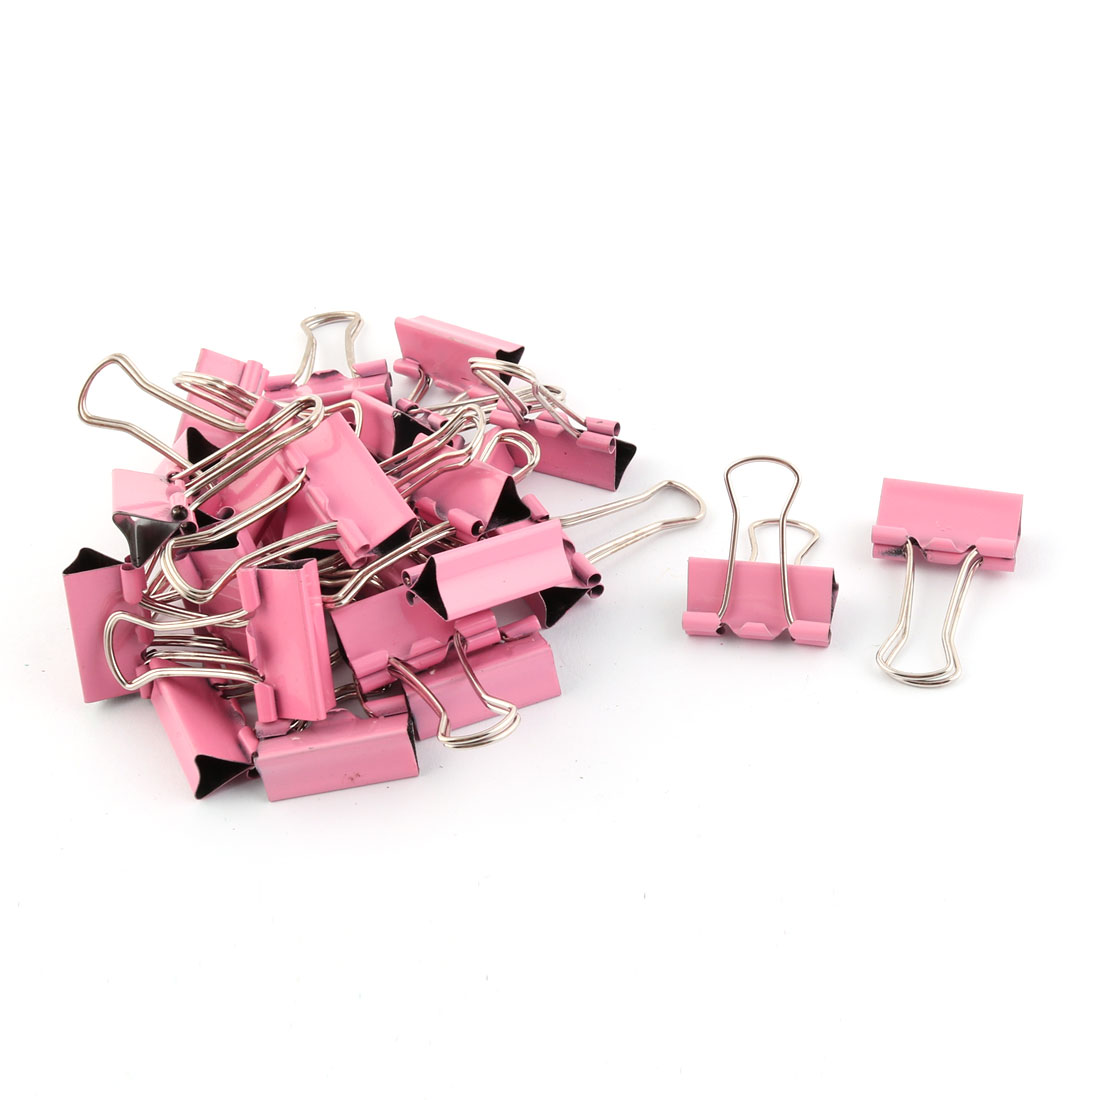 School Office Metal Test Paper File Organizer Binder Clips Pink 28 Pcs